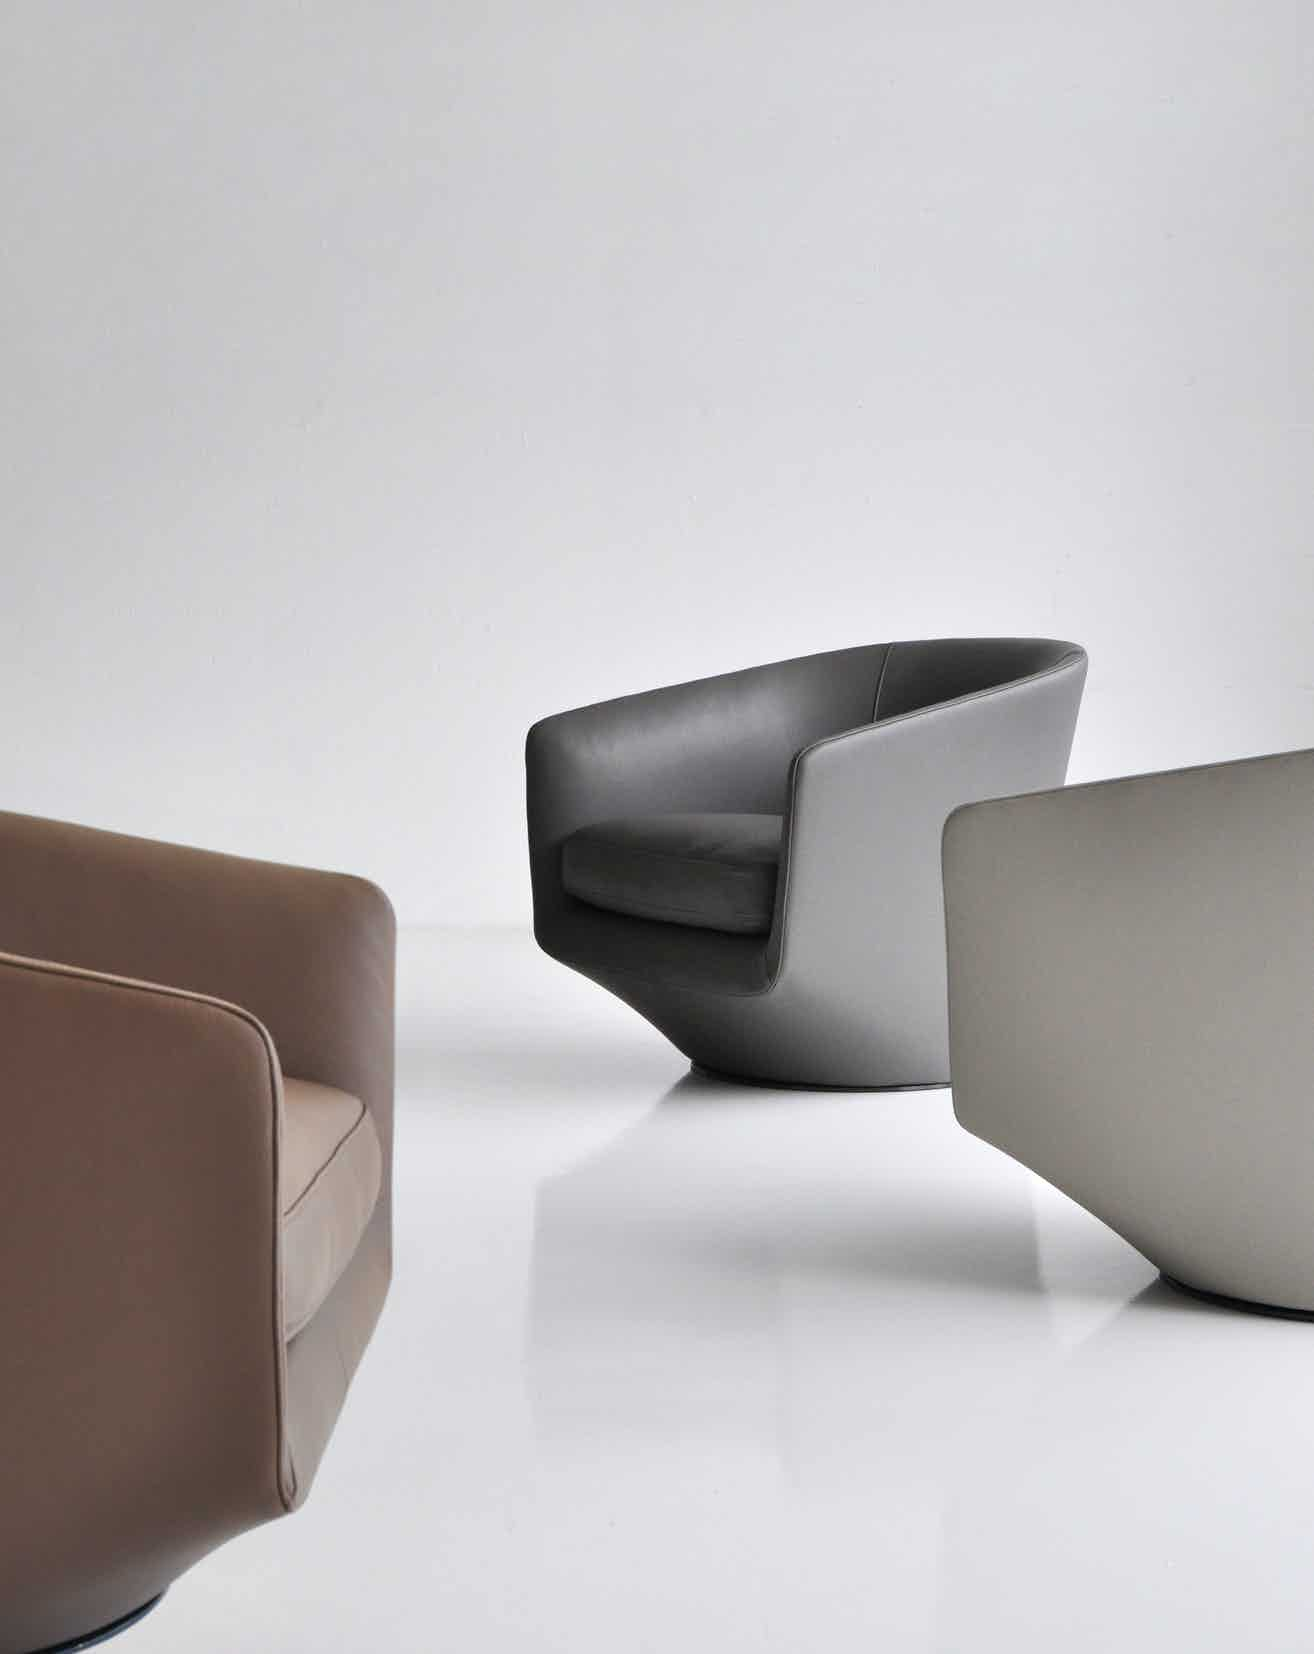 Bensen u turn chair trio detail haute living